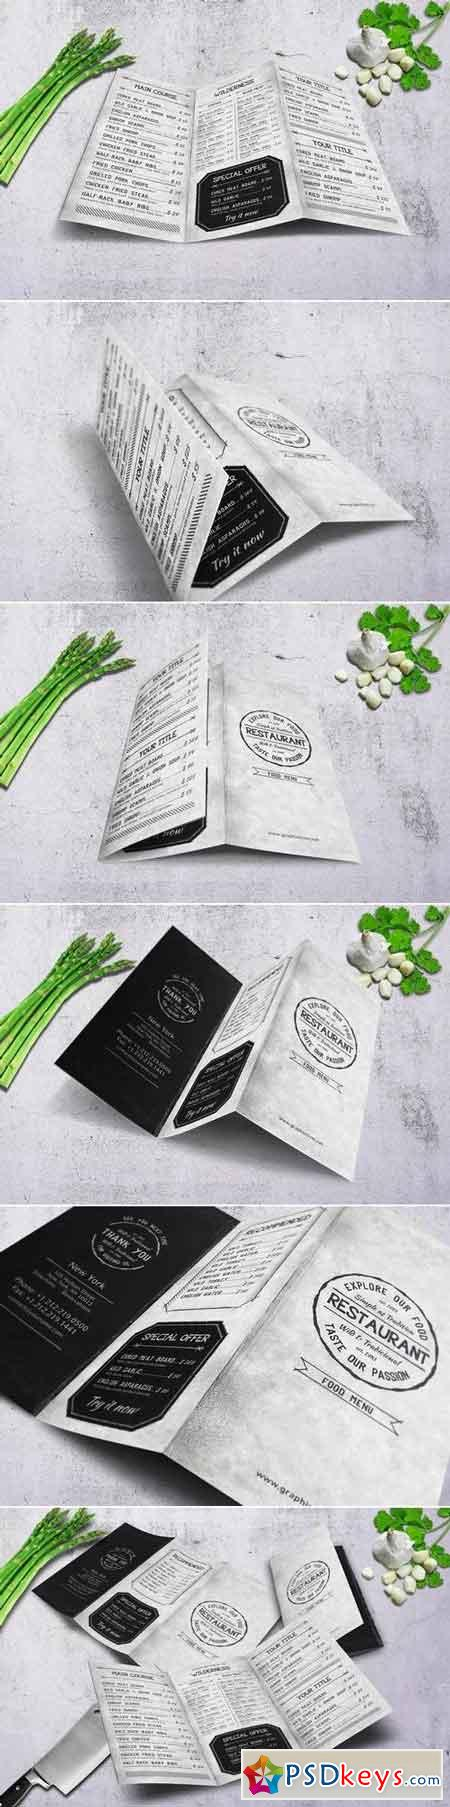 Vintage A4 Trifold Food Menu